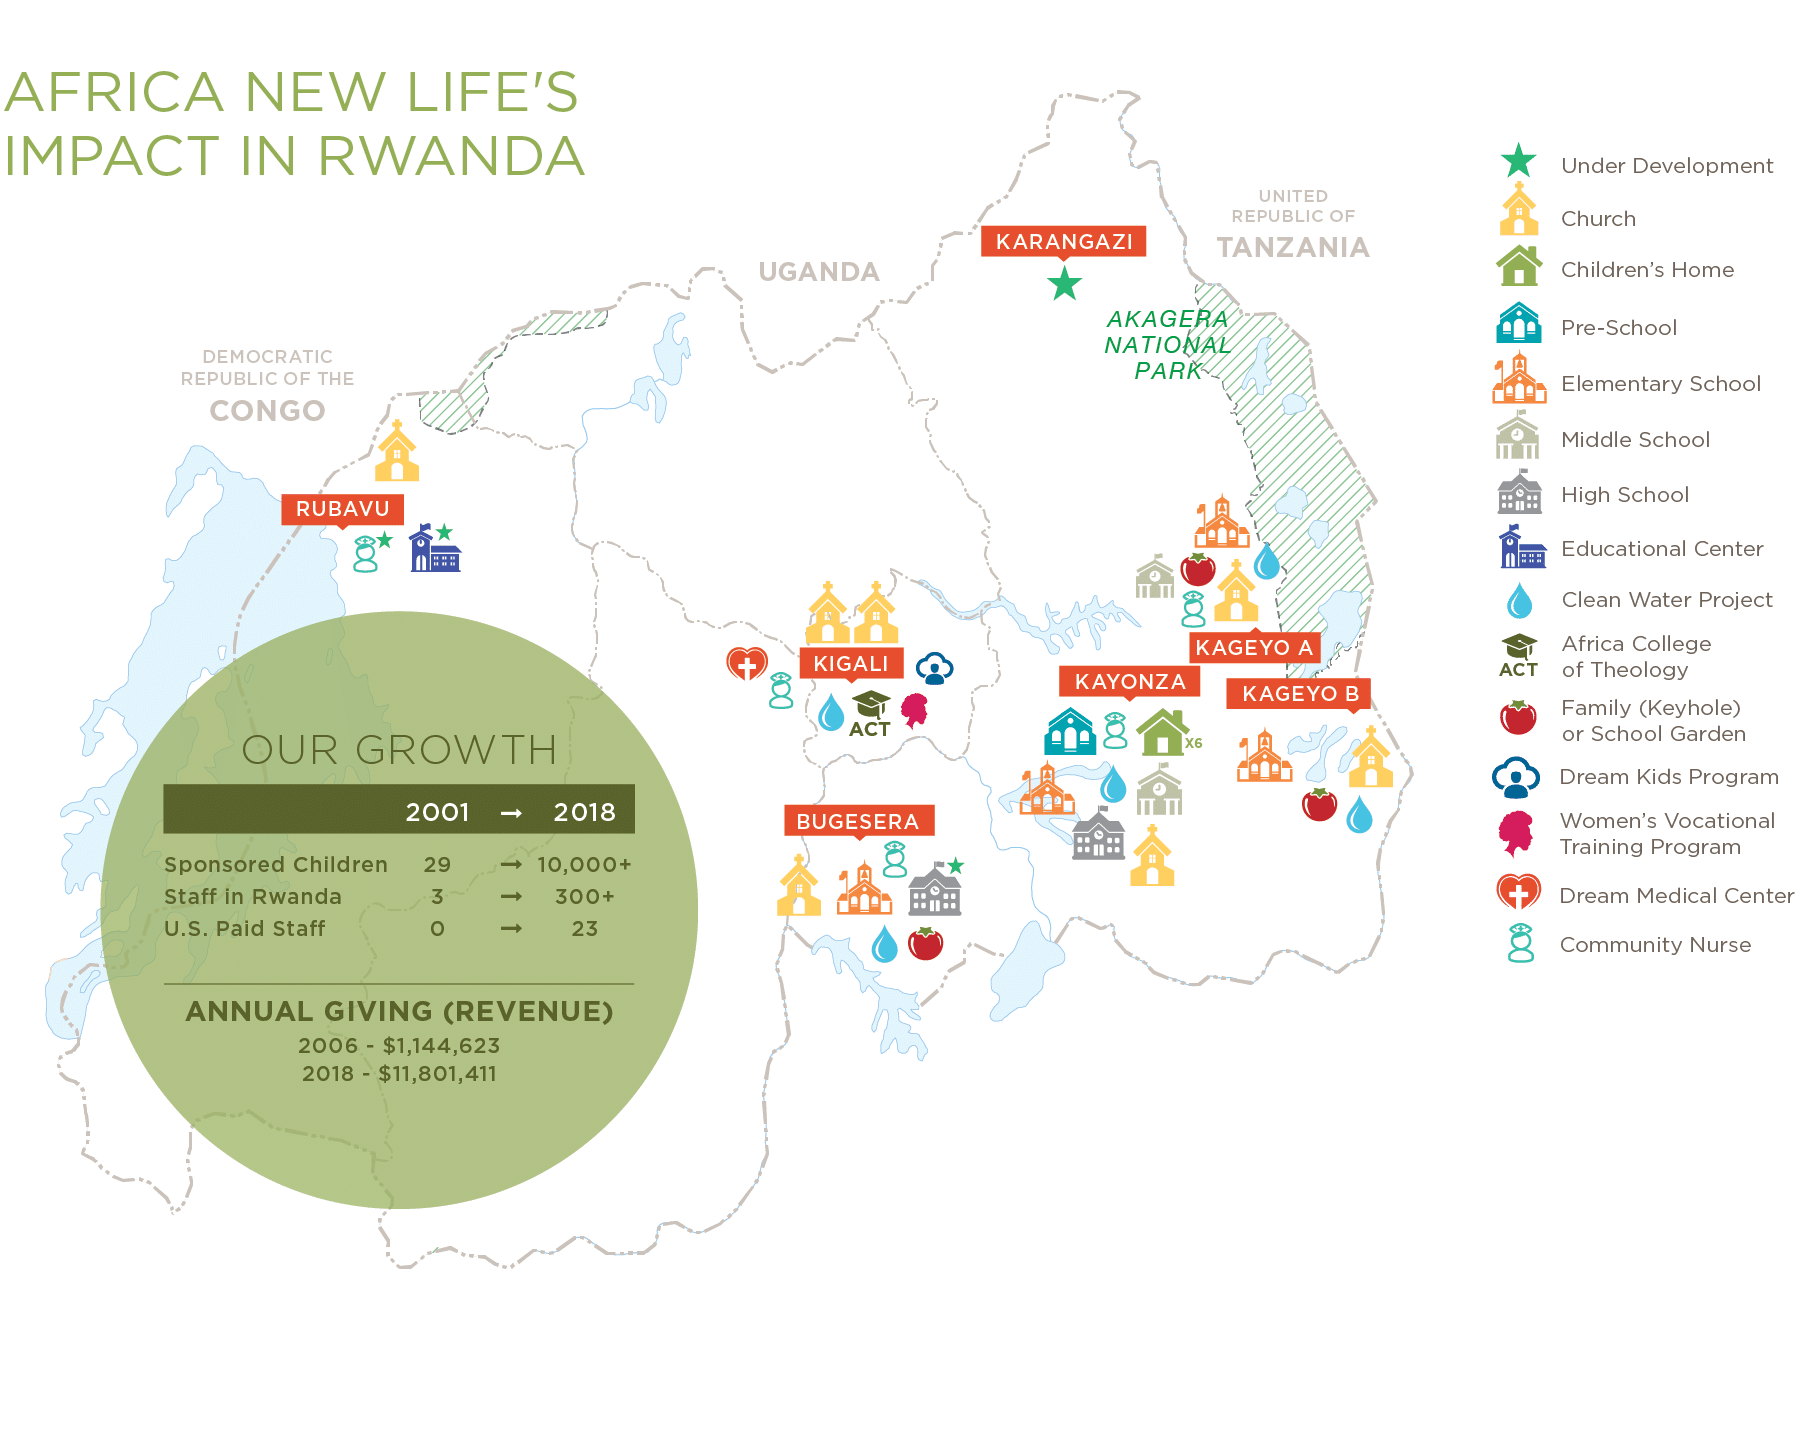 Africa New Life - Impact Map